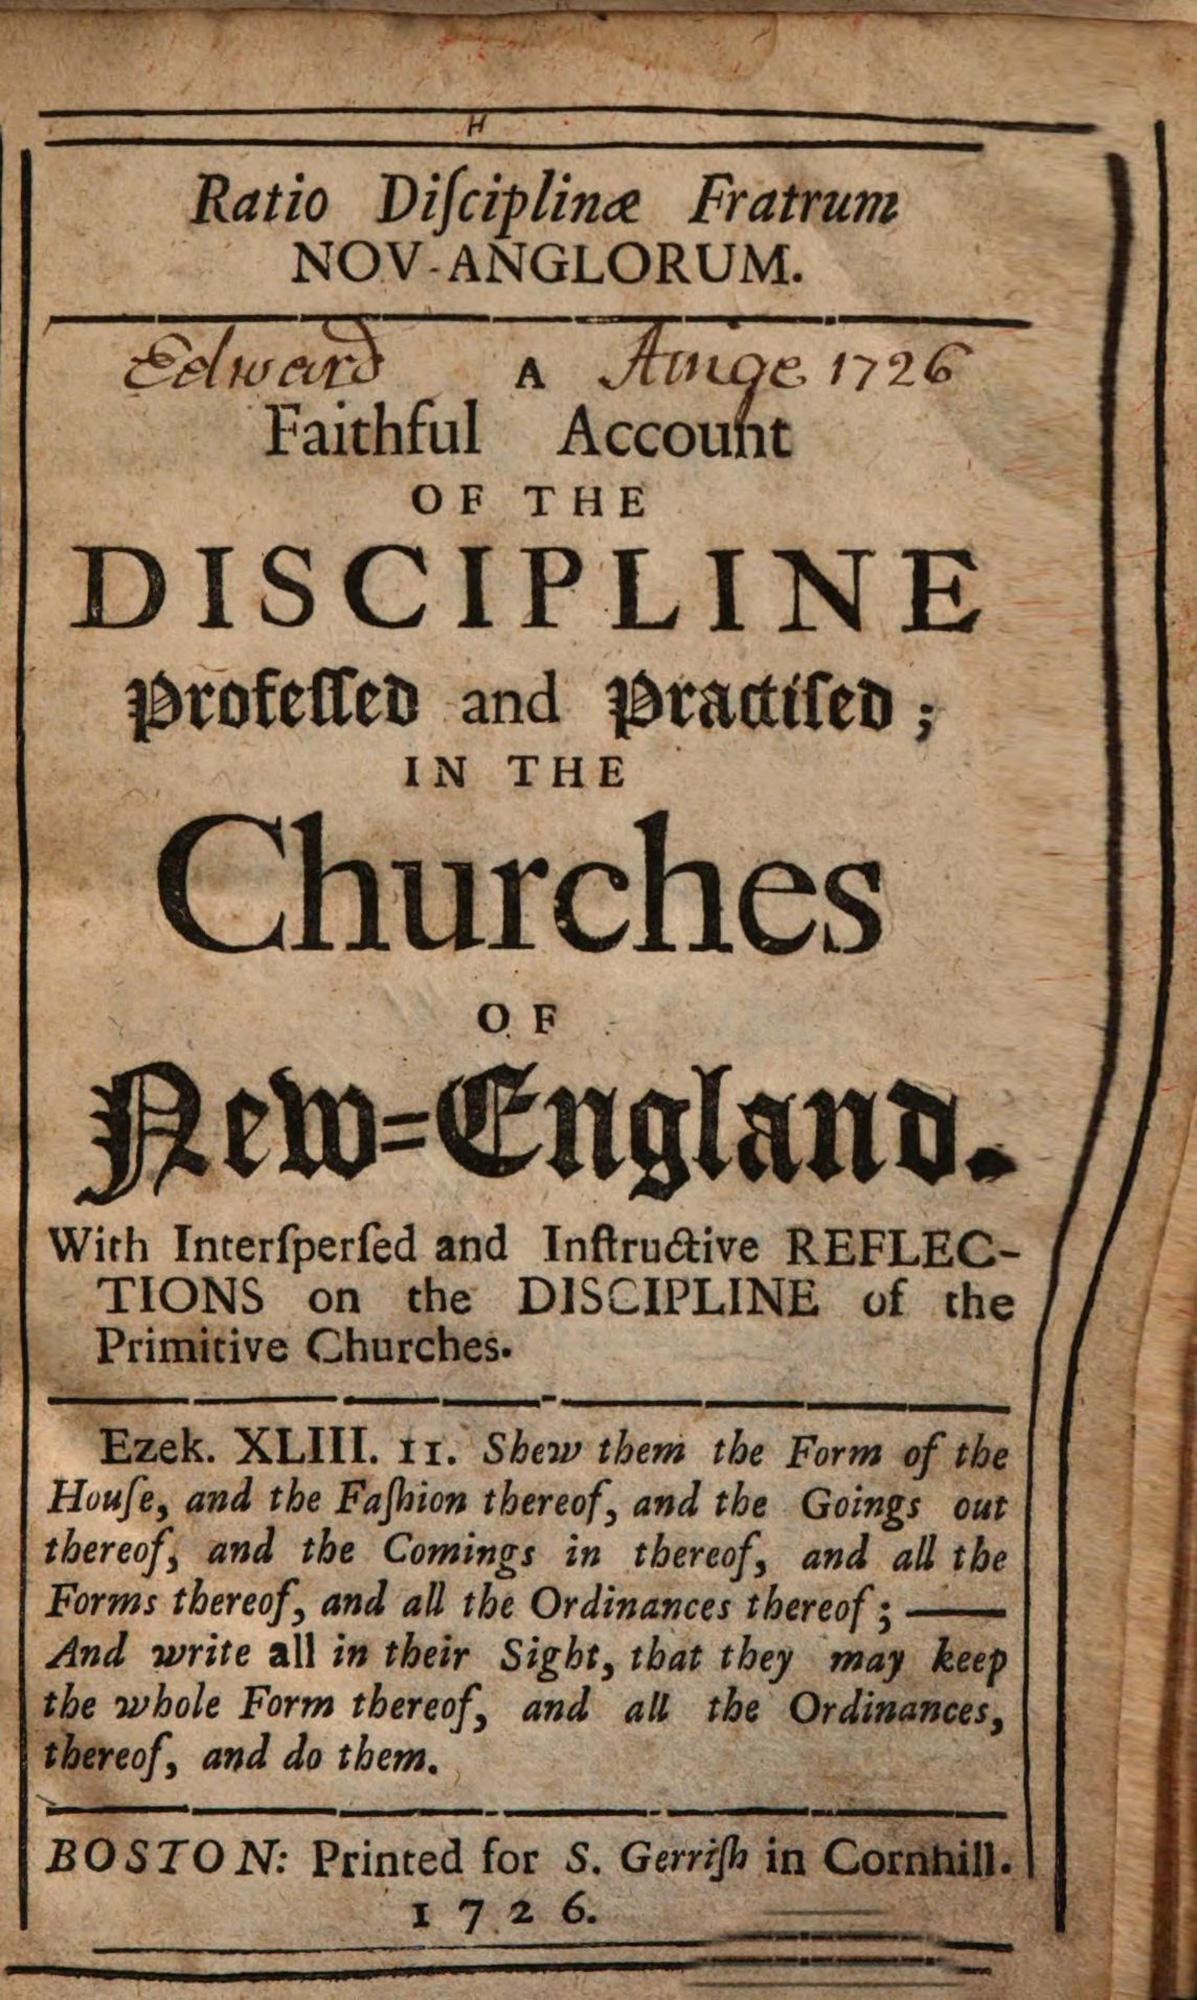 An 18th century guide to the principles and practices of New England's churches. Title Page announces 'A faithful account of the discipline professed and practiced in the Churches of New England'